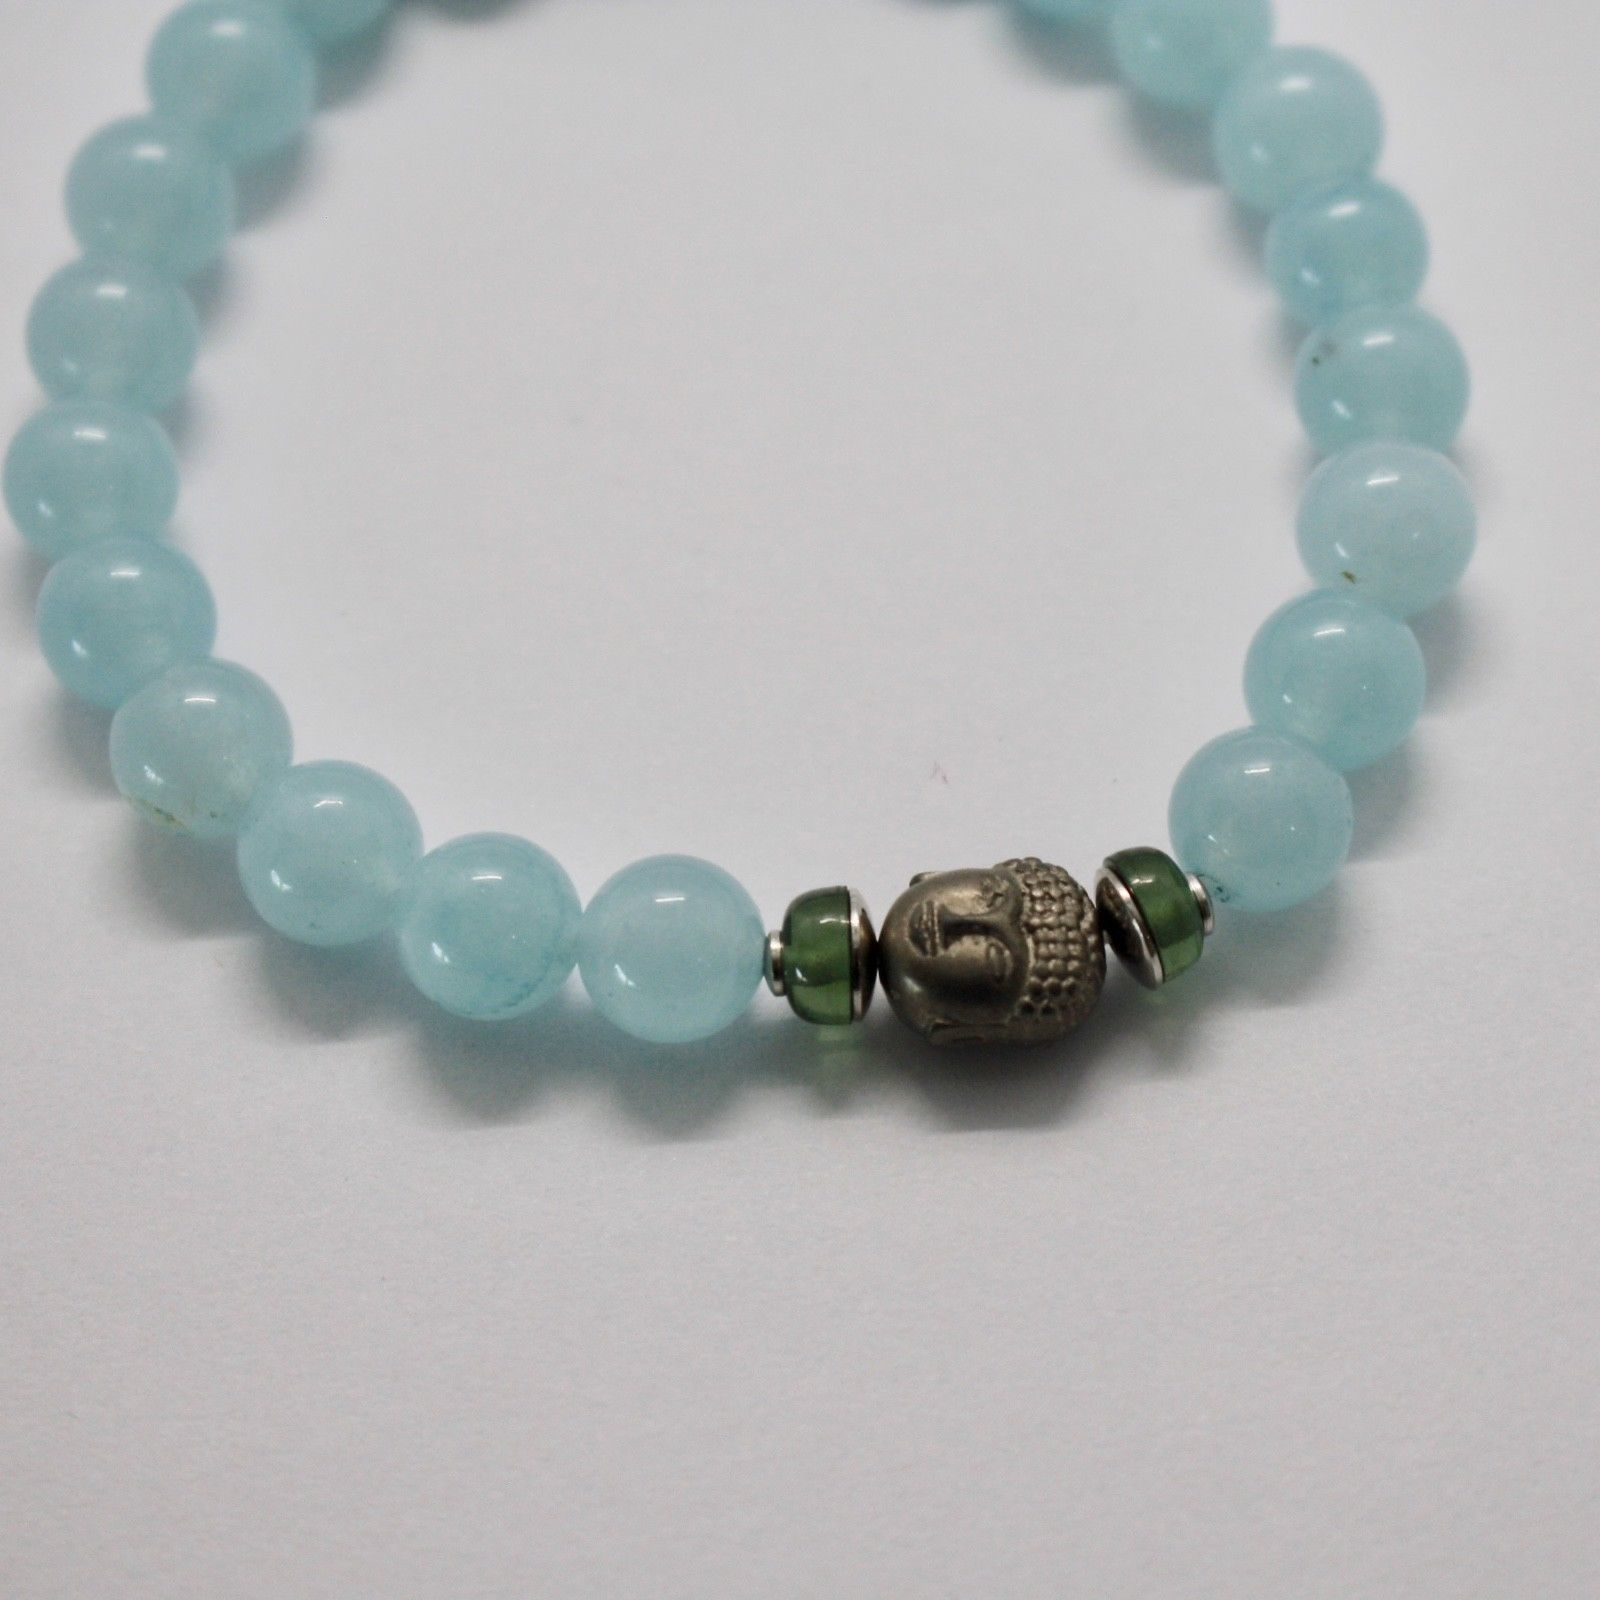 Silver 925 Bracelet with Hematite & Jade Blue BPR-5 Made in Italy by Maschia